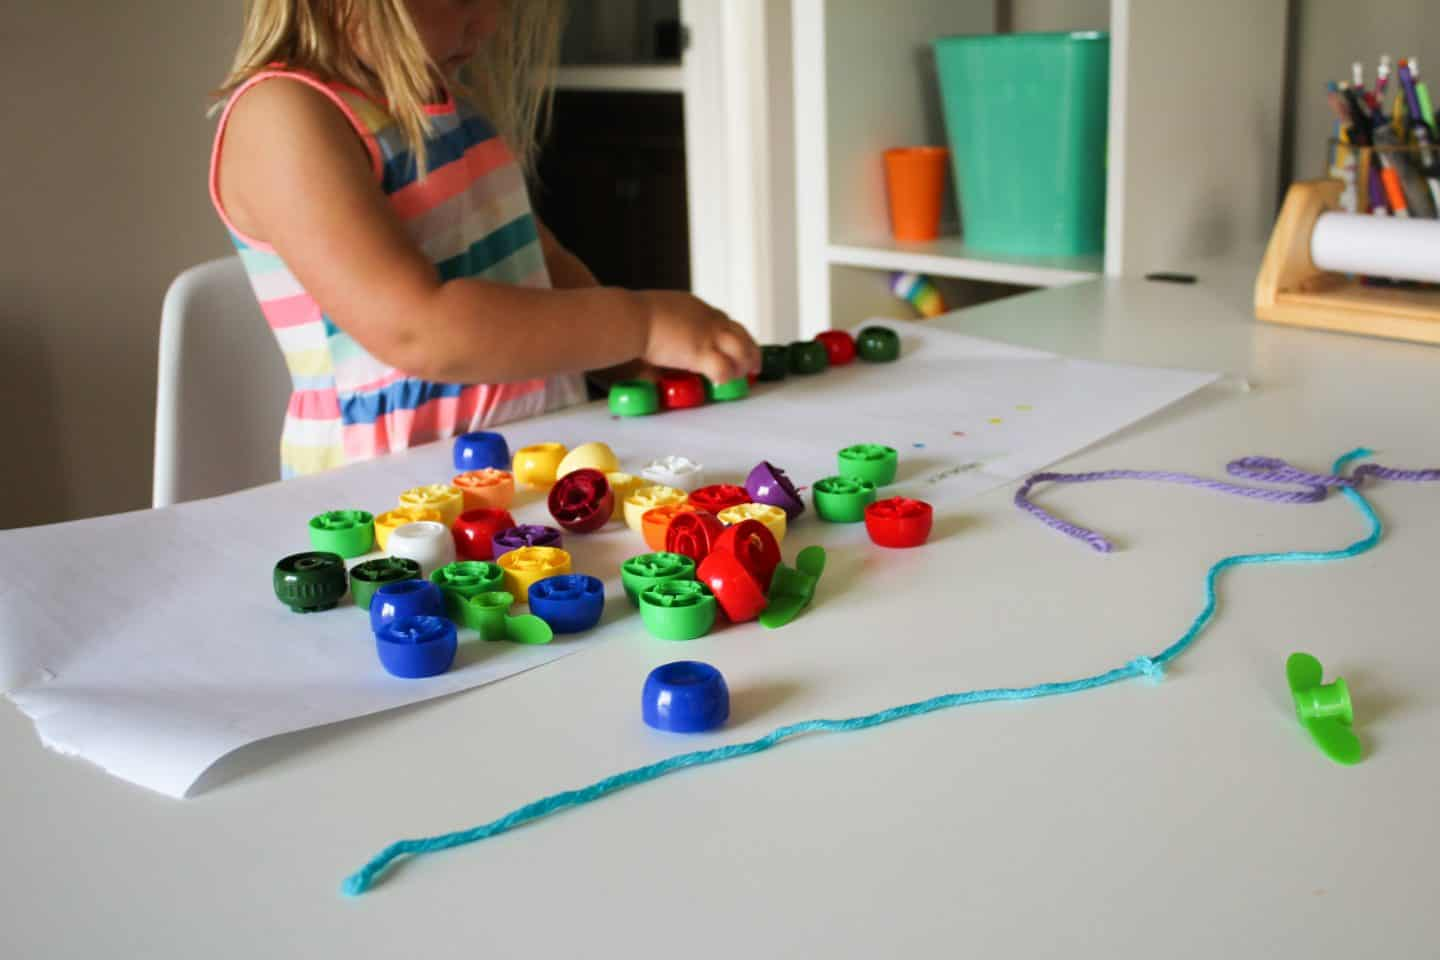 Pouch cap craft activity for toddlers and preschoolers. A fun way to reuse pouch caps for a necklace threading activity